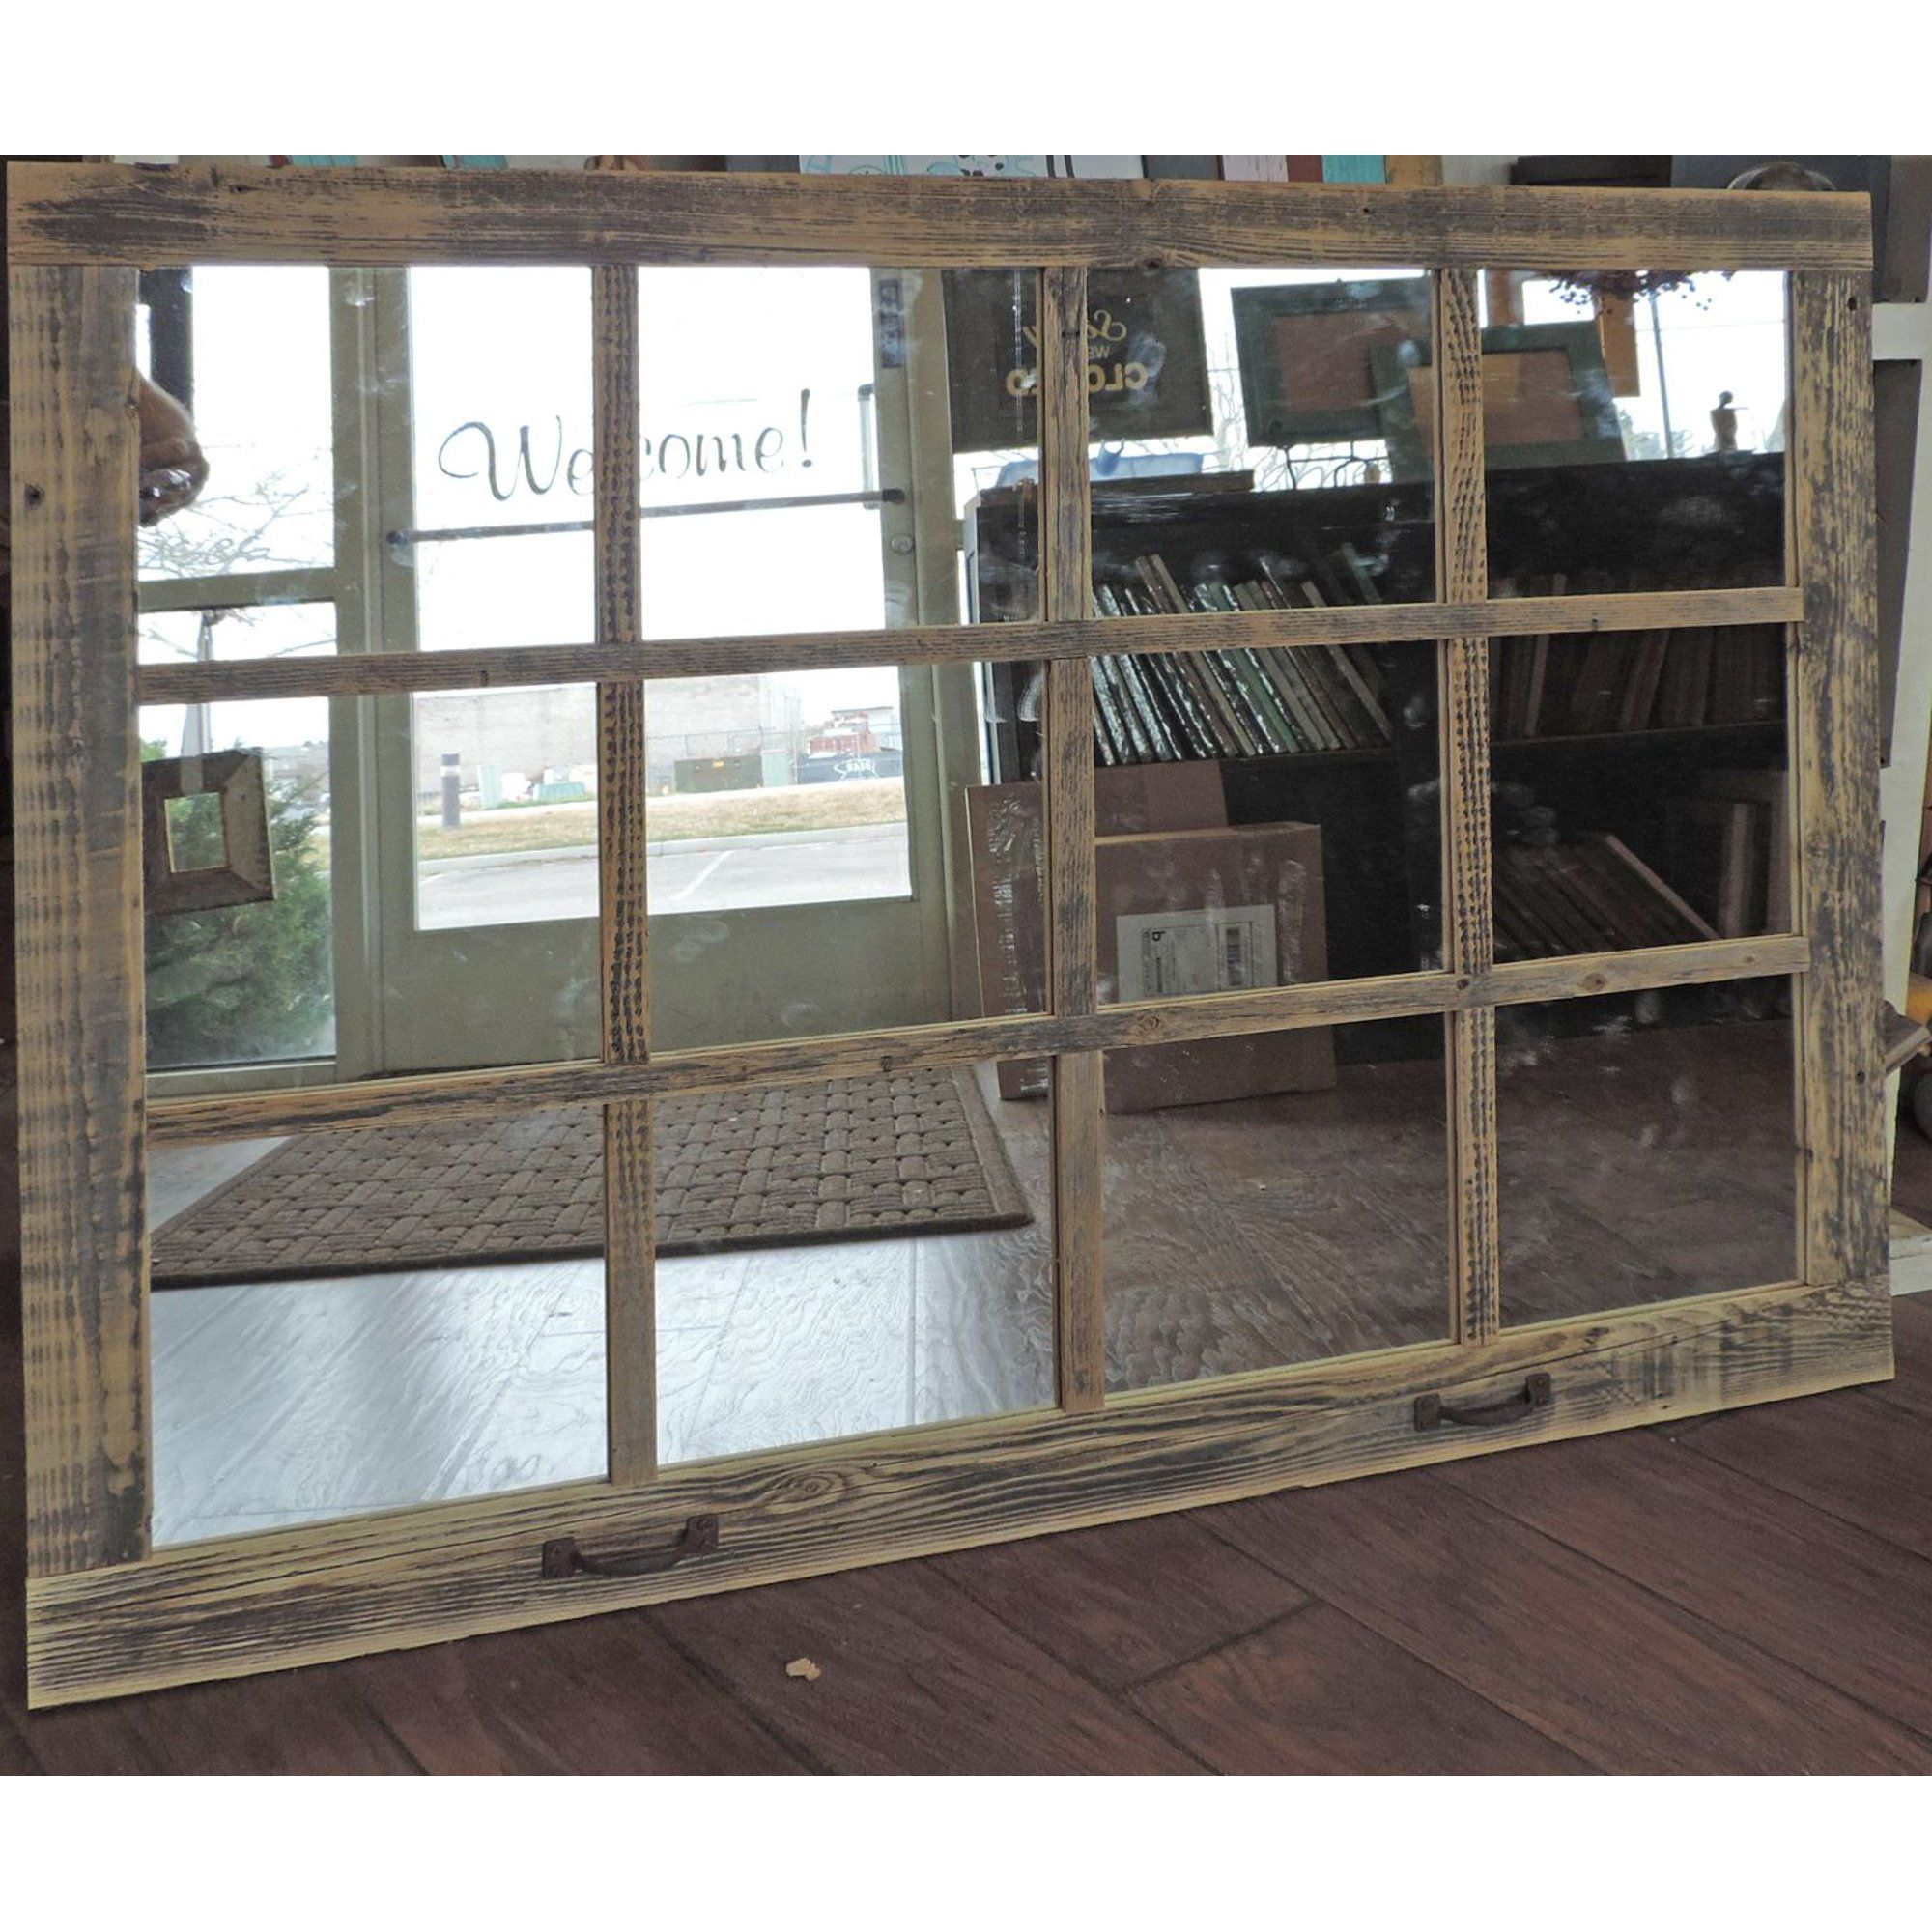 Allbarnwood 46 X 36 Homesteader Style 12 Pane Window Mirror Walmart Com In 2020 Window Pane Mirror Rustic Window Farmhouse Windows